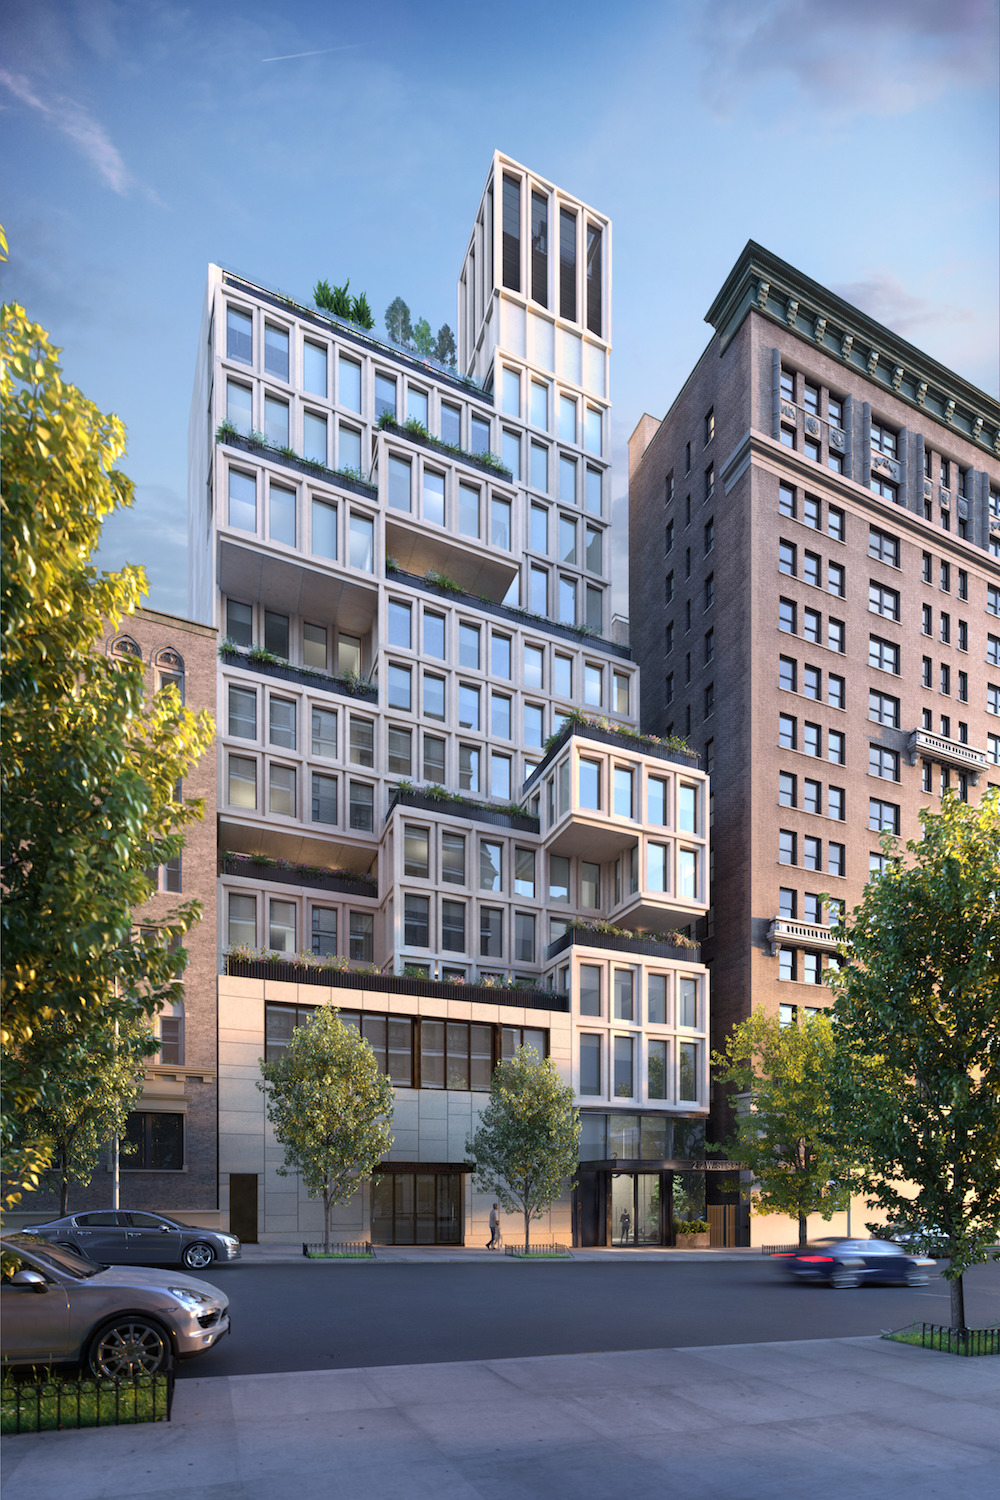 212 West 93rd Street Condo Embodies What People Want Coming out of the Pandemic